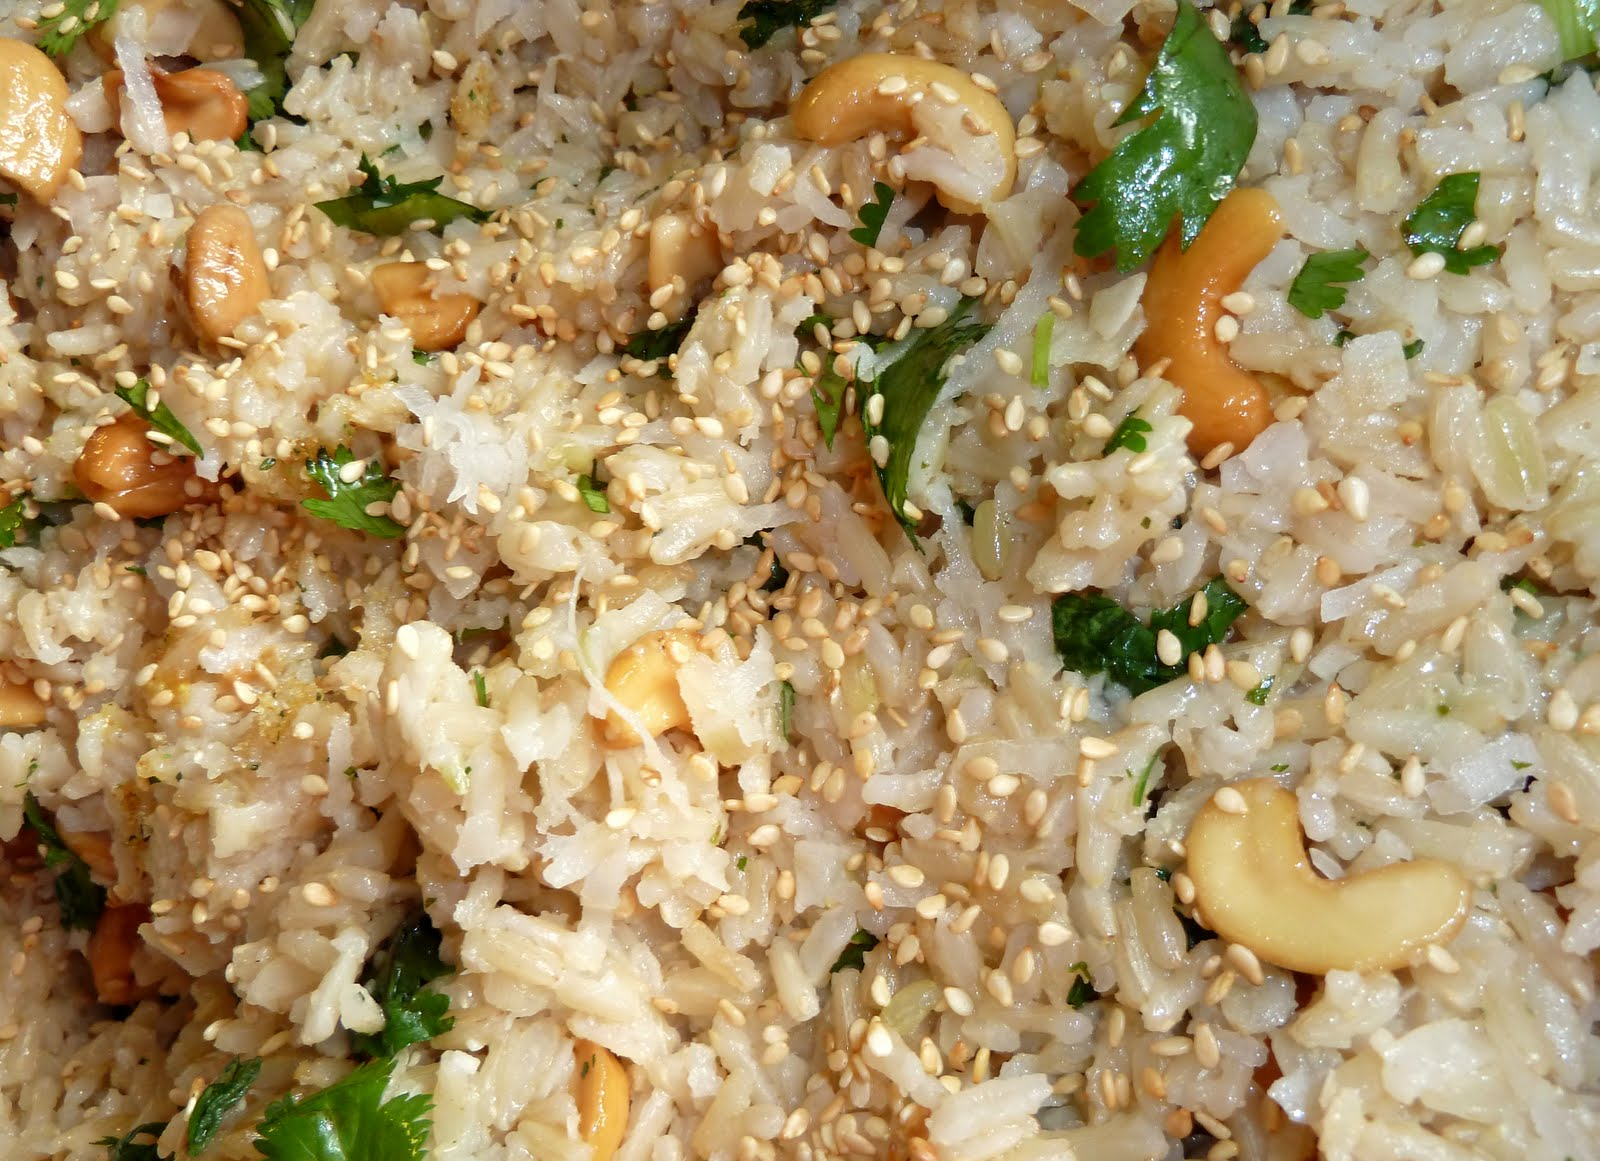 Dinner with Denise: Coconut-Cashew Brown Basmati Rice